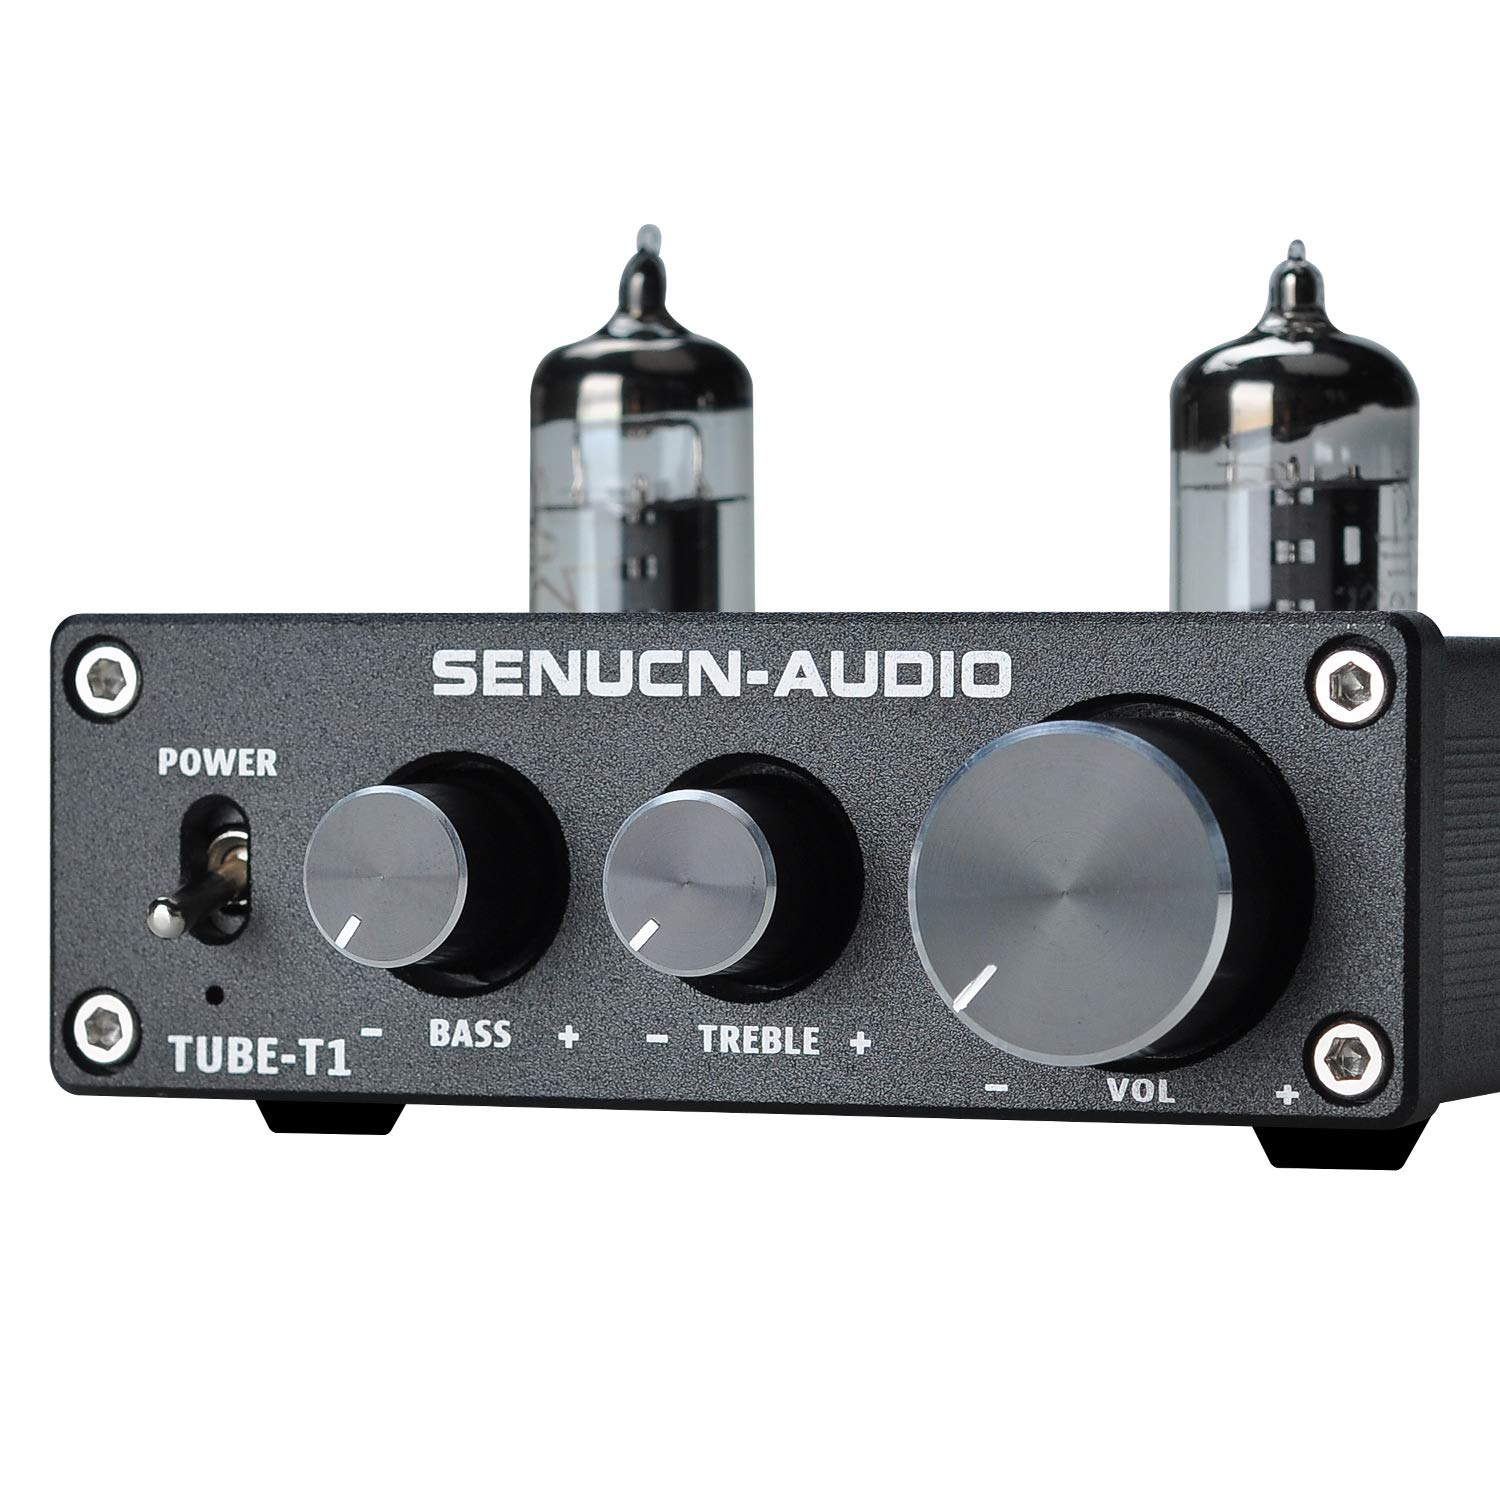 SENUCN-AUDIO Tube-T1 Preamplifier, 6J1 Vacuum Tube Amplifier Buffer Mini Hi-Fi Stereo Preamp with Treble & Bass Tone Control for Home Audio Player